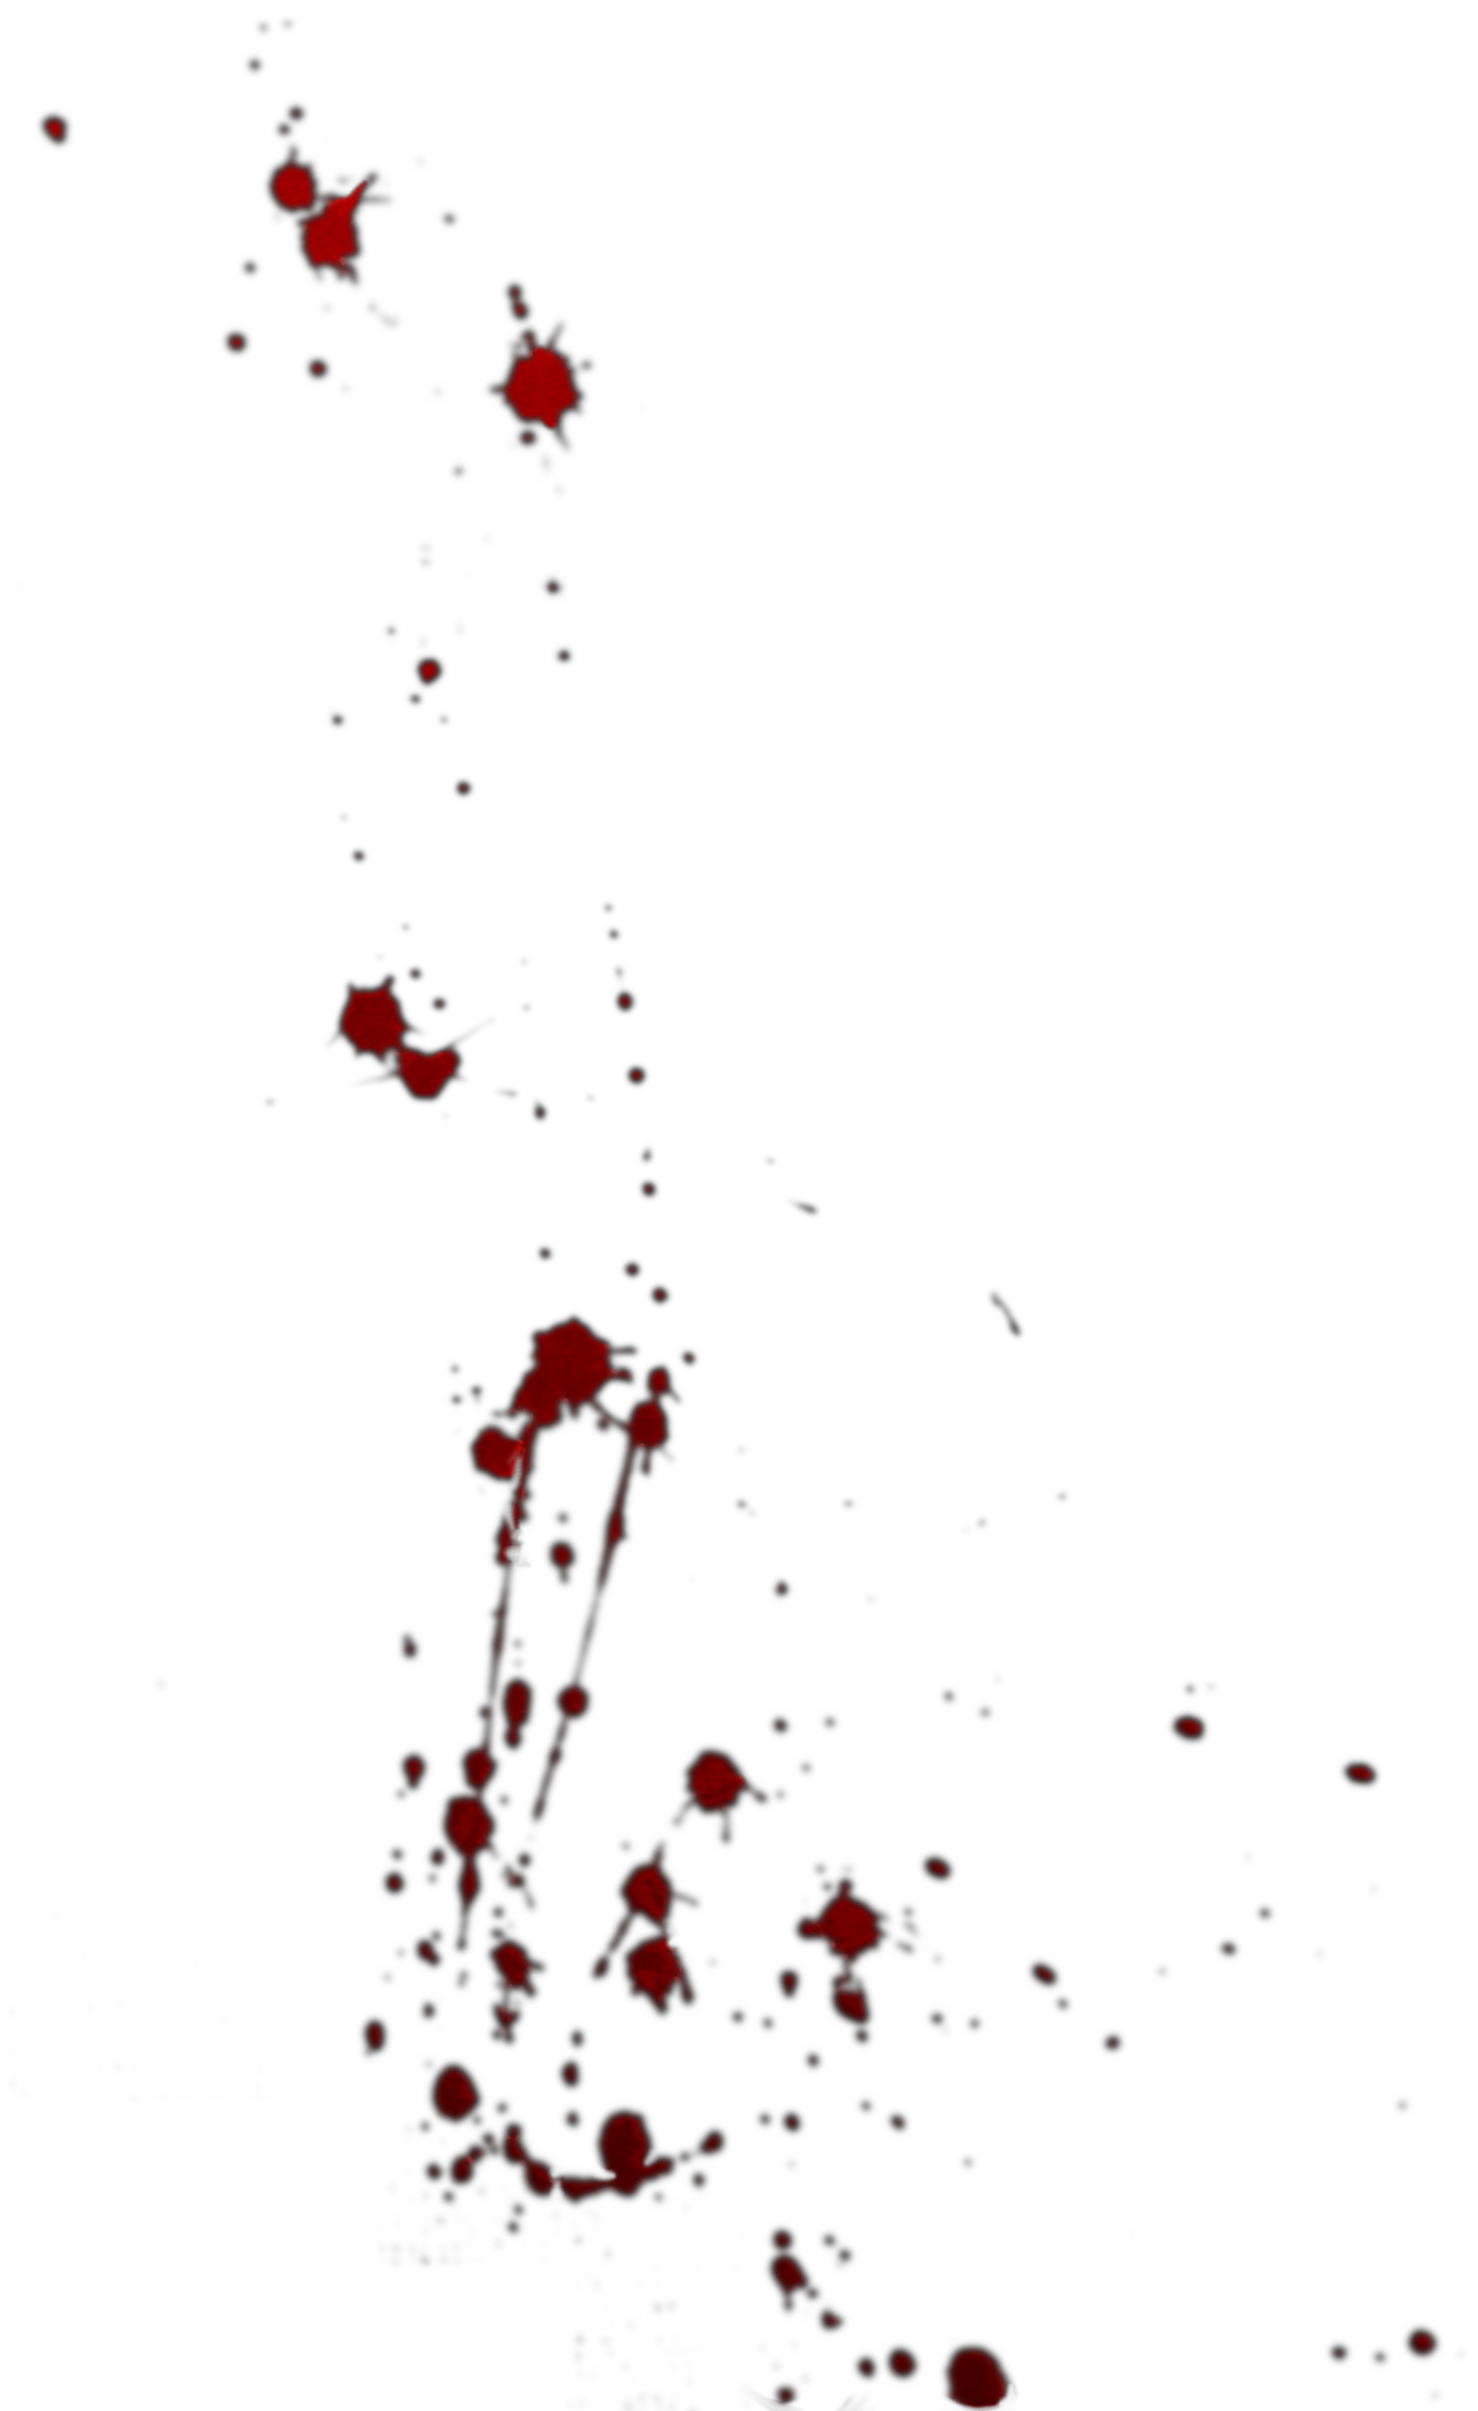 Blood drip png transparent. Clipart free dripping decor